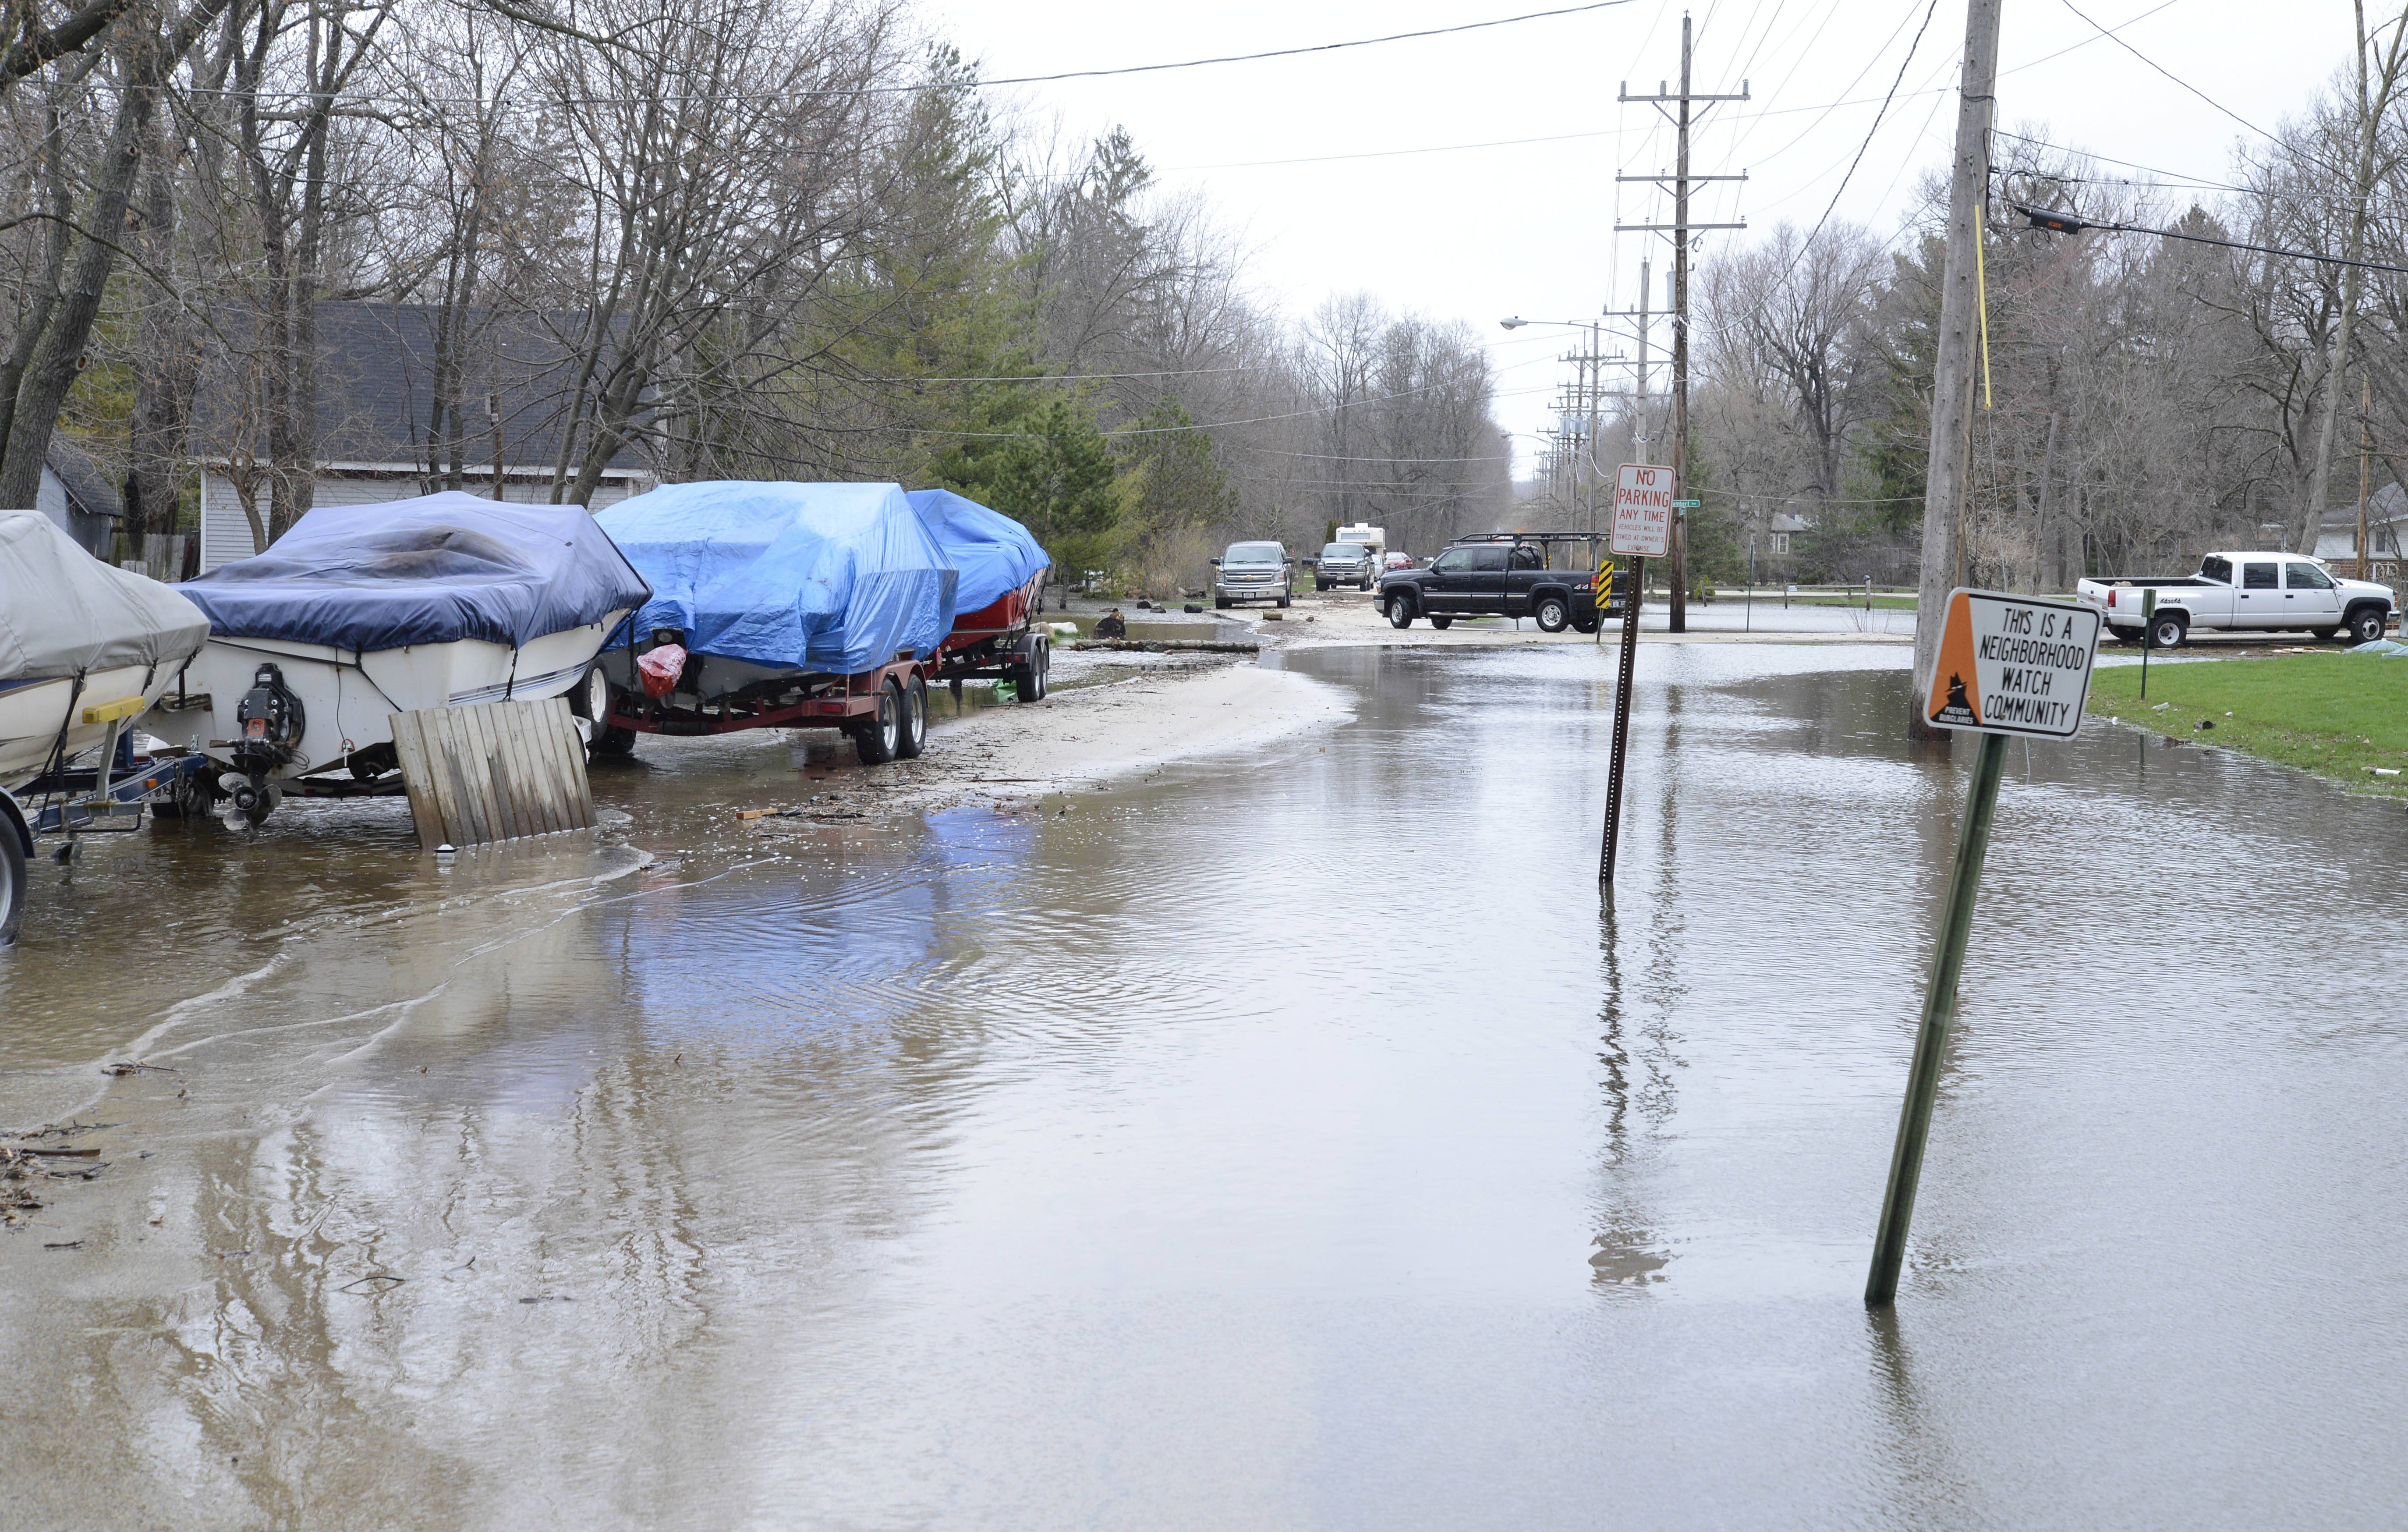 Floodwaters have receded since yesterday along Grove Ave in St. Charles Township on Friday, April 19. This neighborhood is on the east side of the river, just north of the Red Gate Bridge.